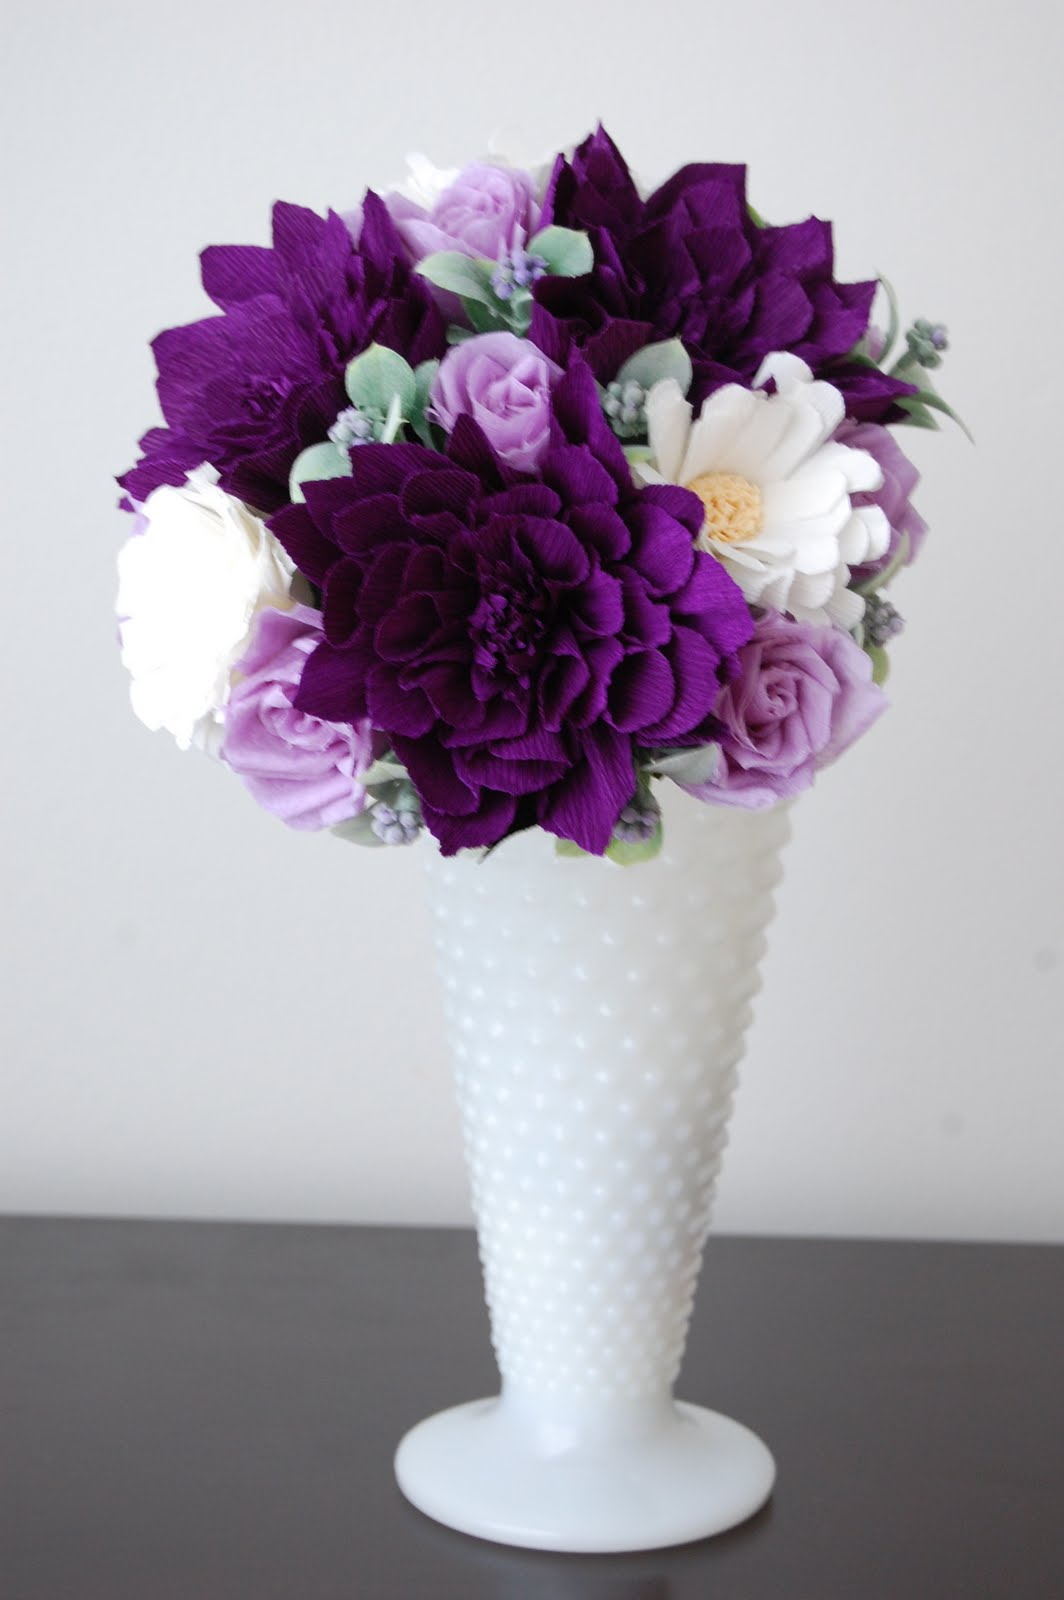 Purple Dahlia Bouquet petite | Handmade PaPer FloweRs by Maria Noble